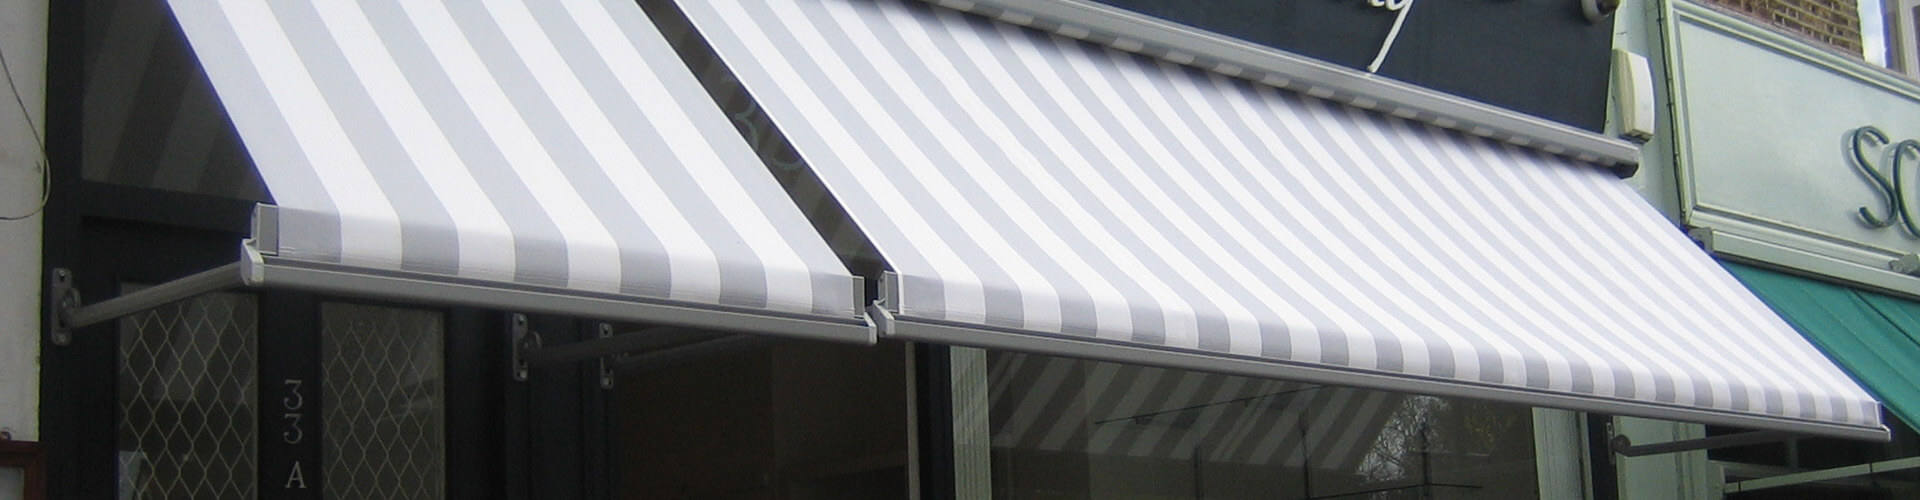 Commercial Awnings - Hero Image